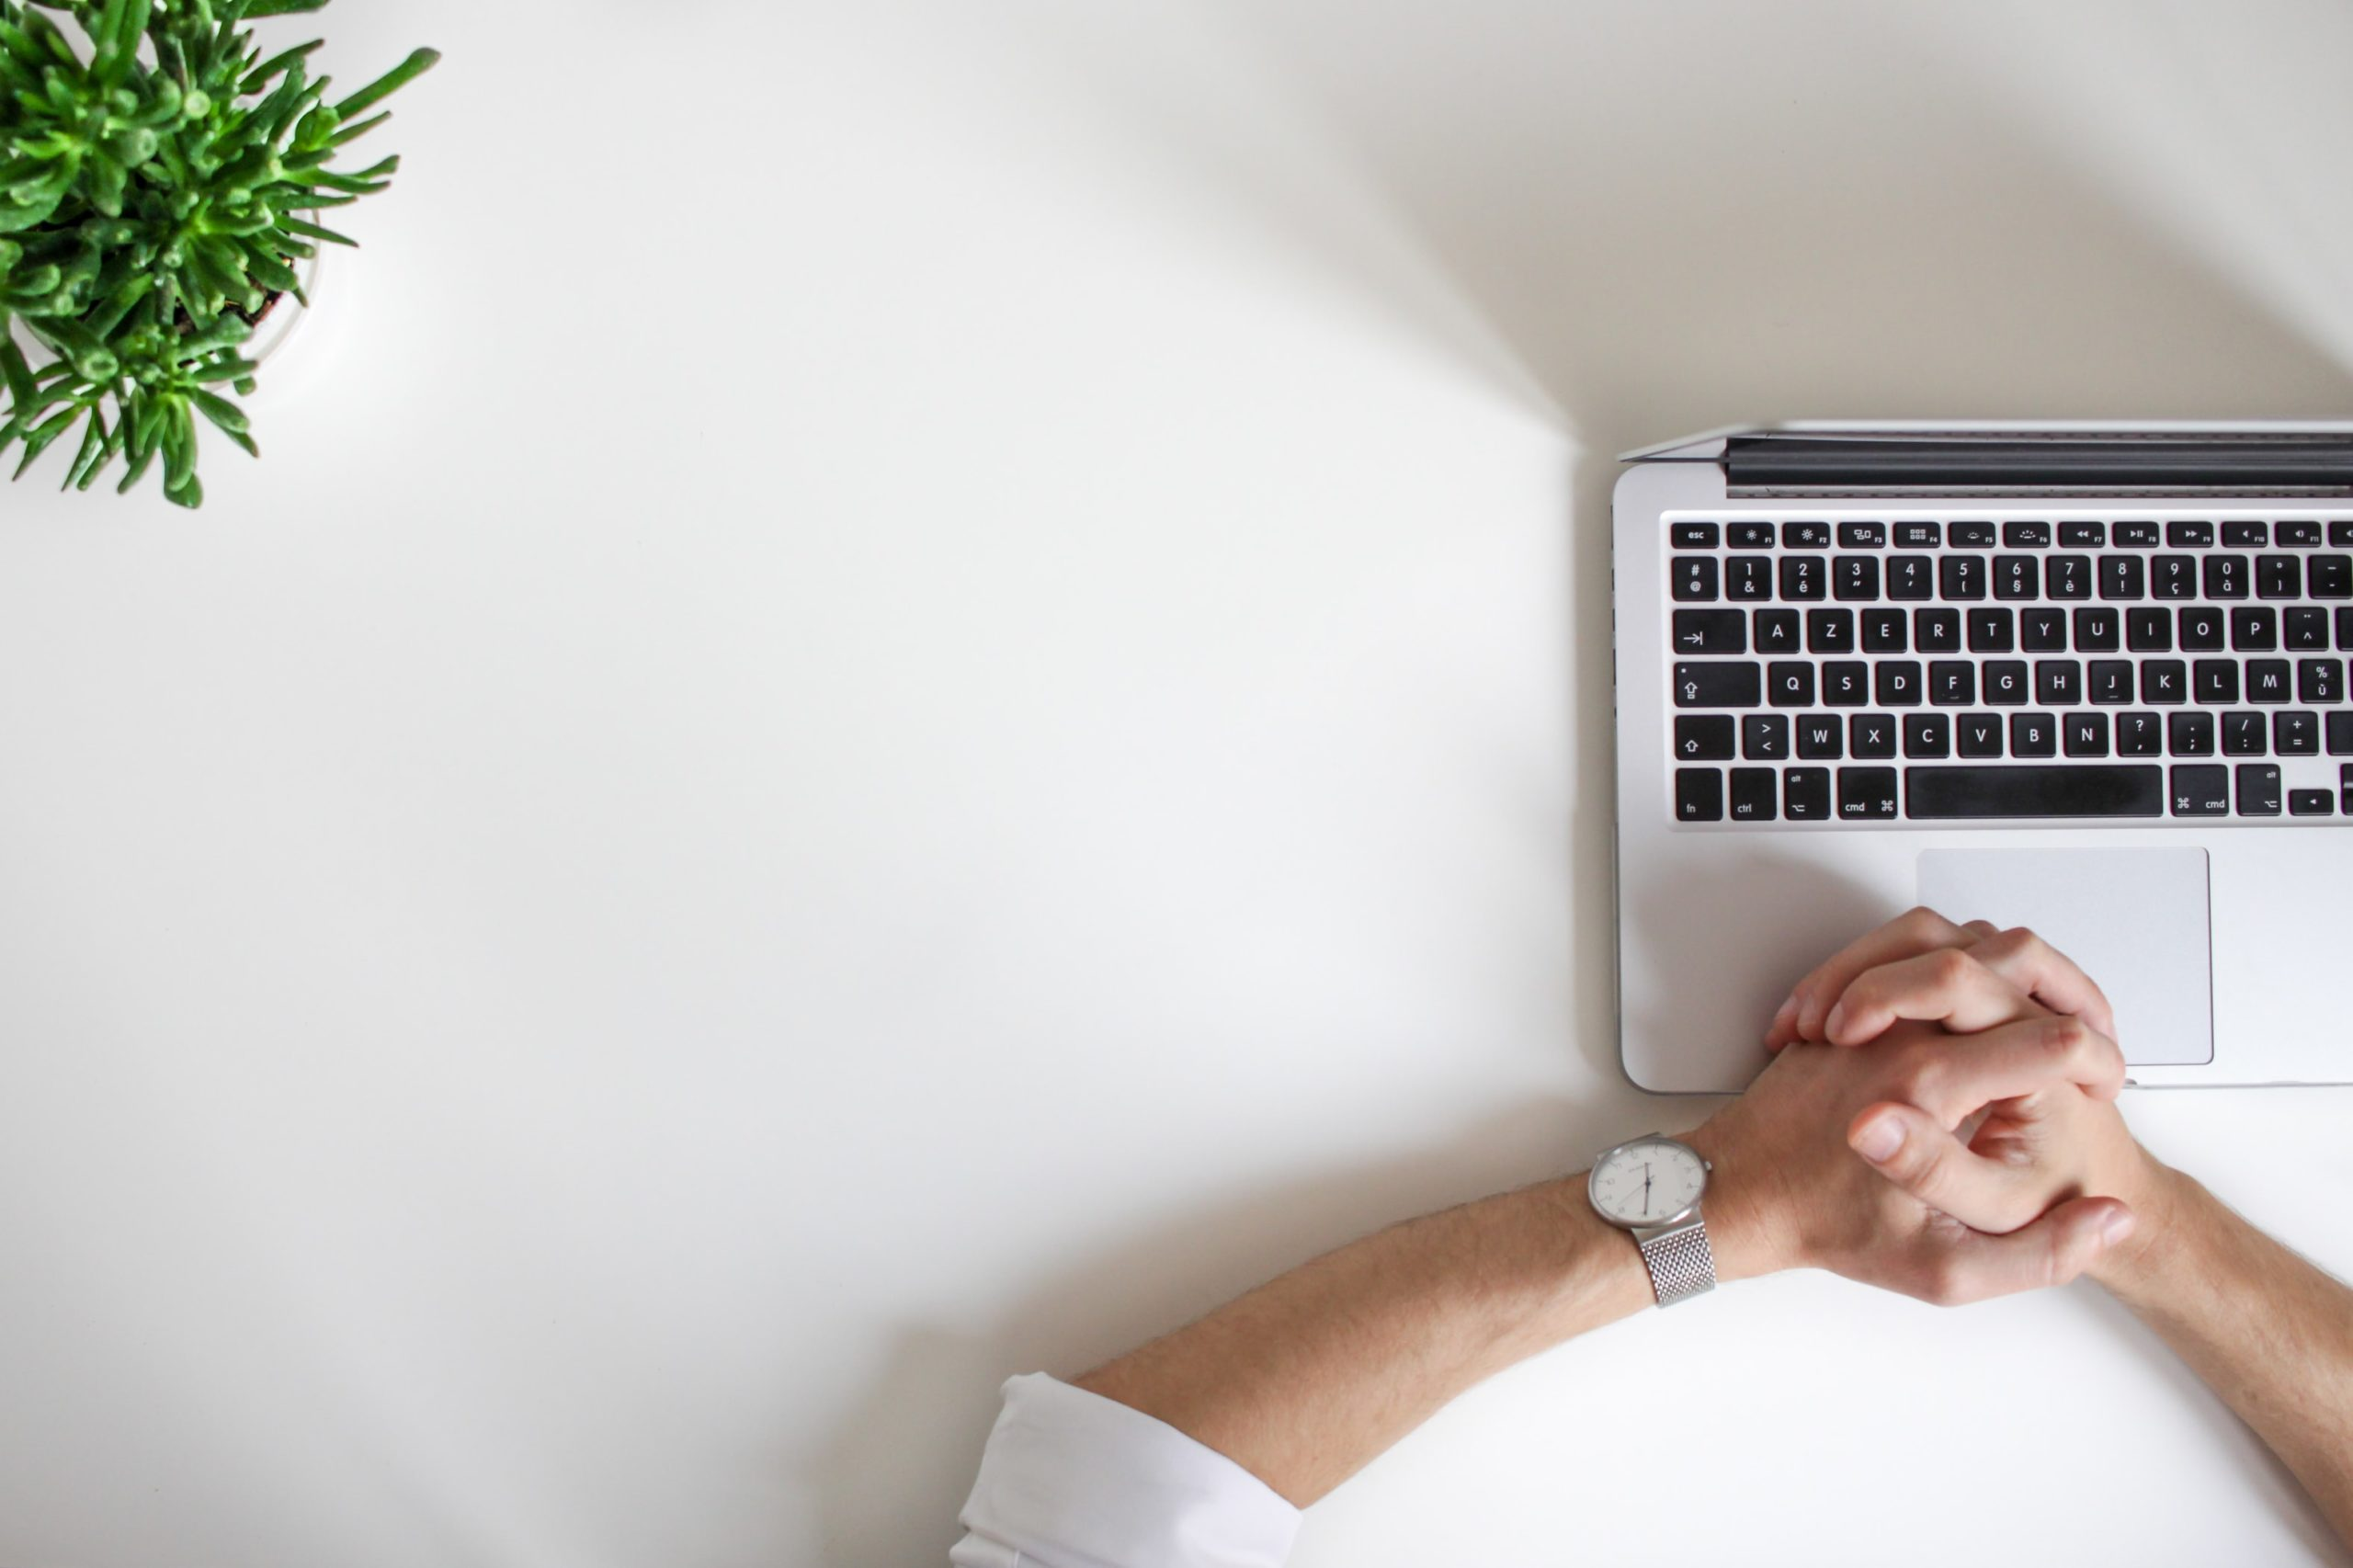 Hands hover over a laptop on a clean white desk with a plant in view.